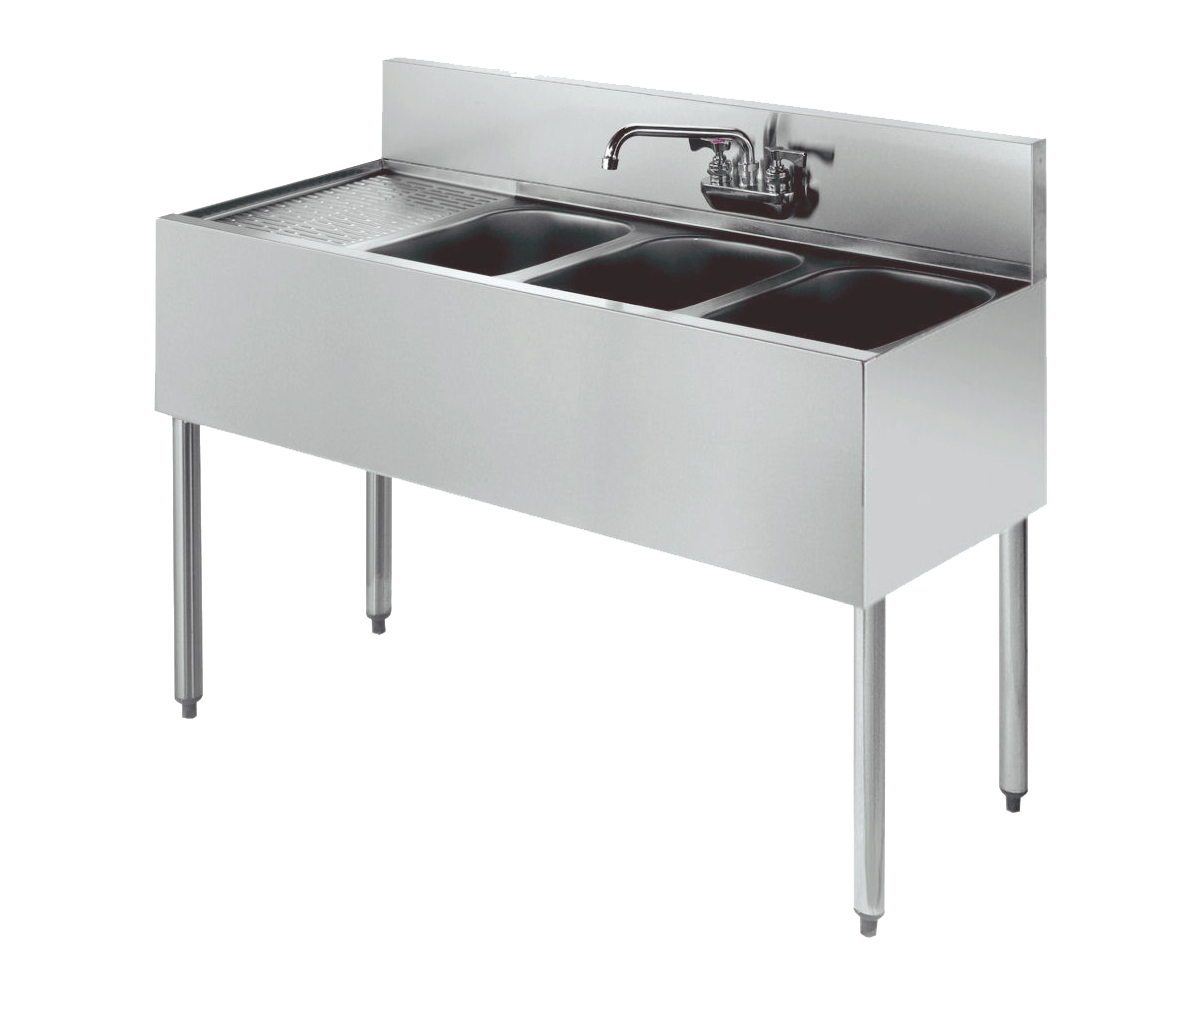 Krowne Metal KR21-43R underbar sink units